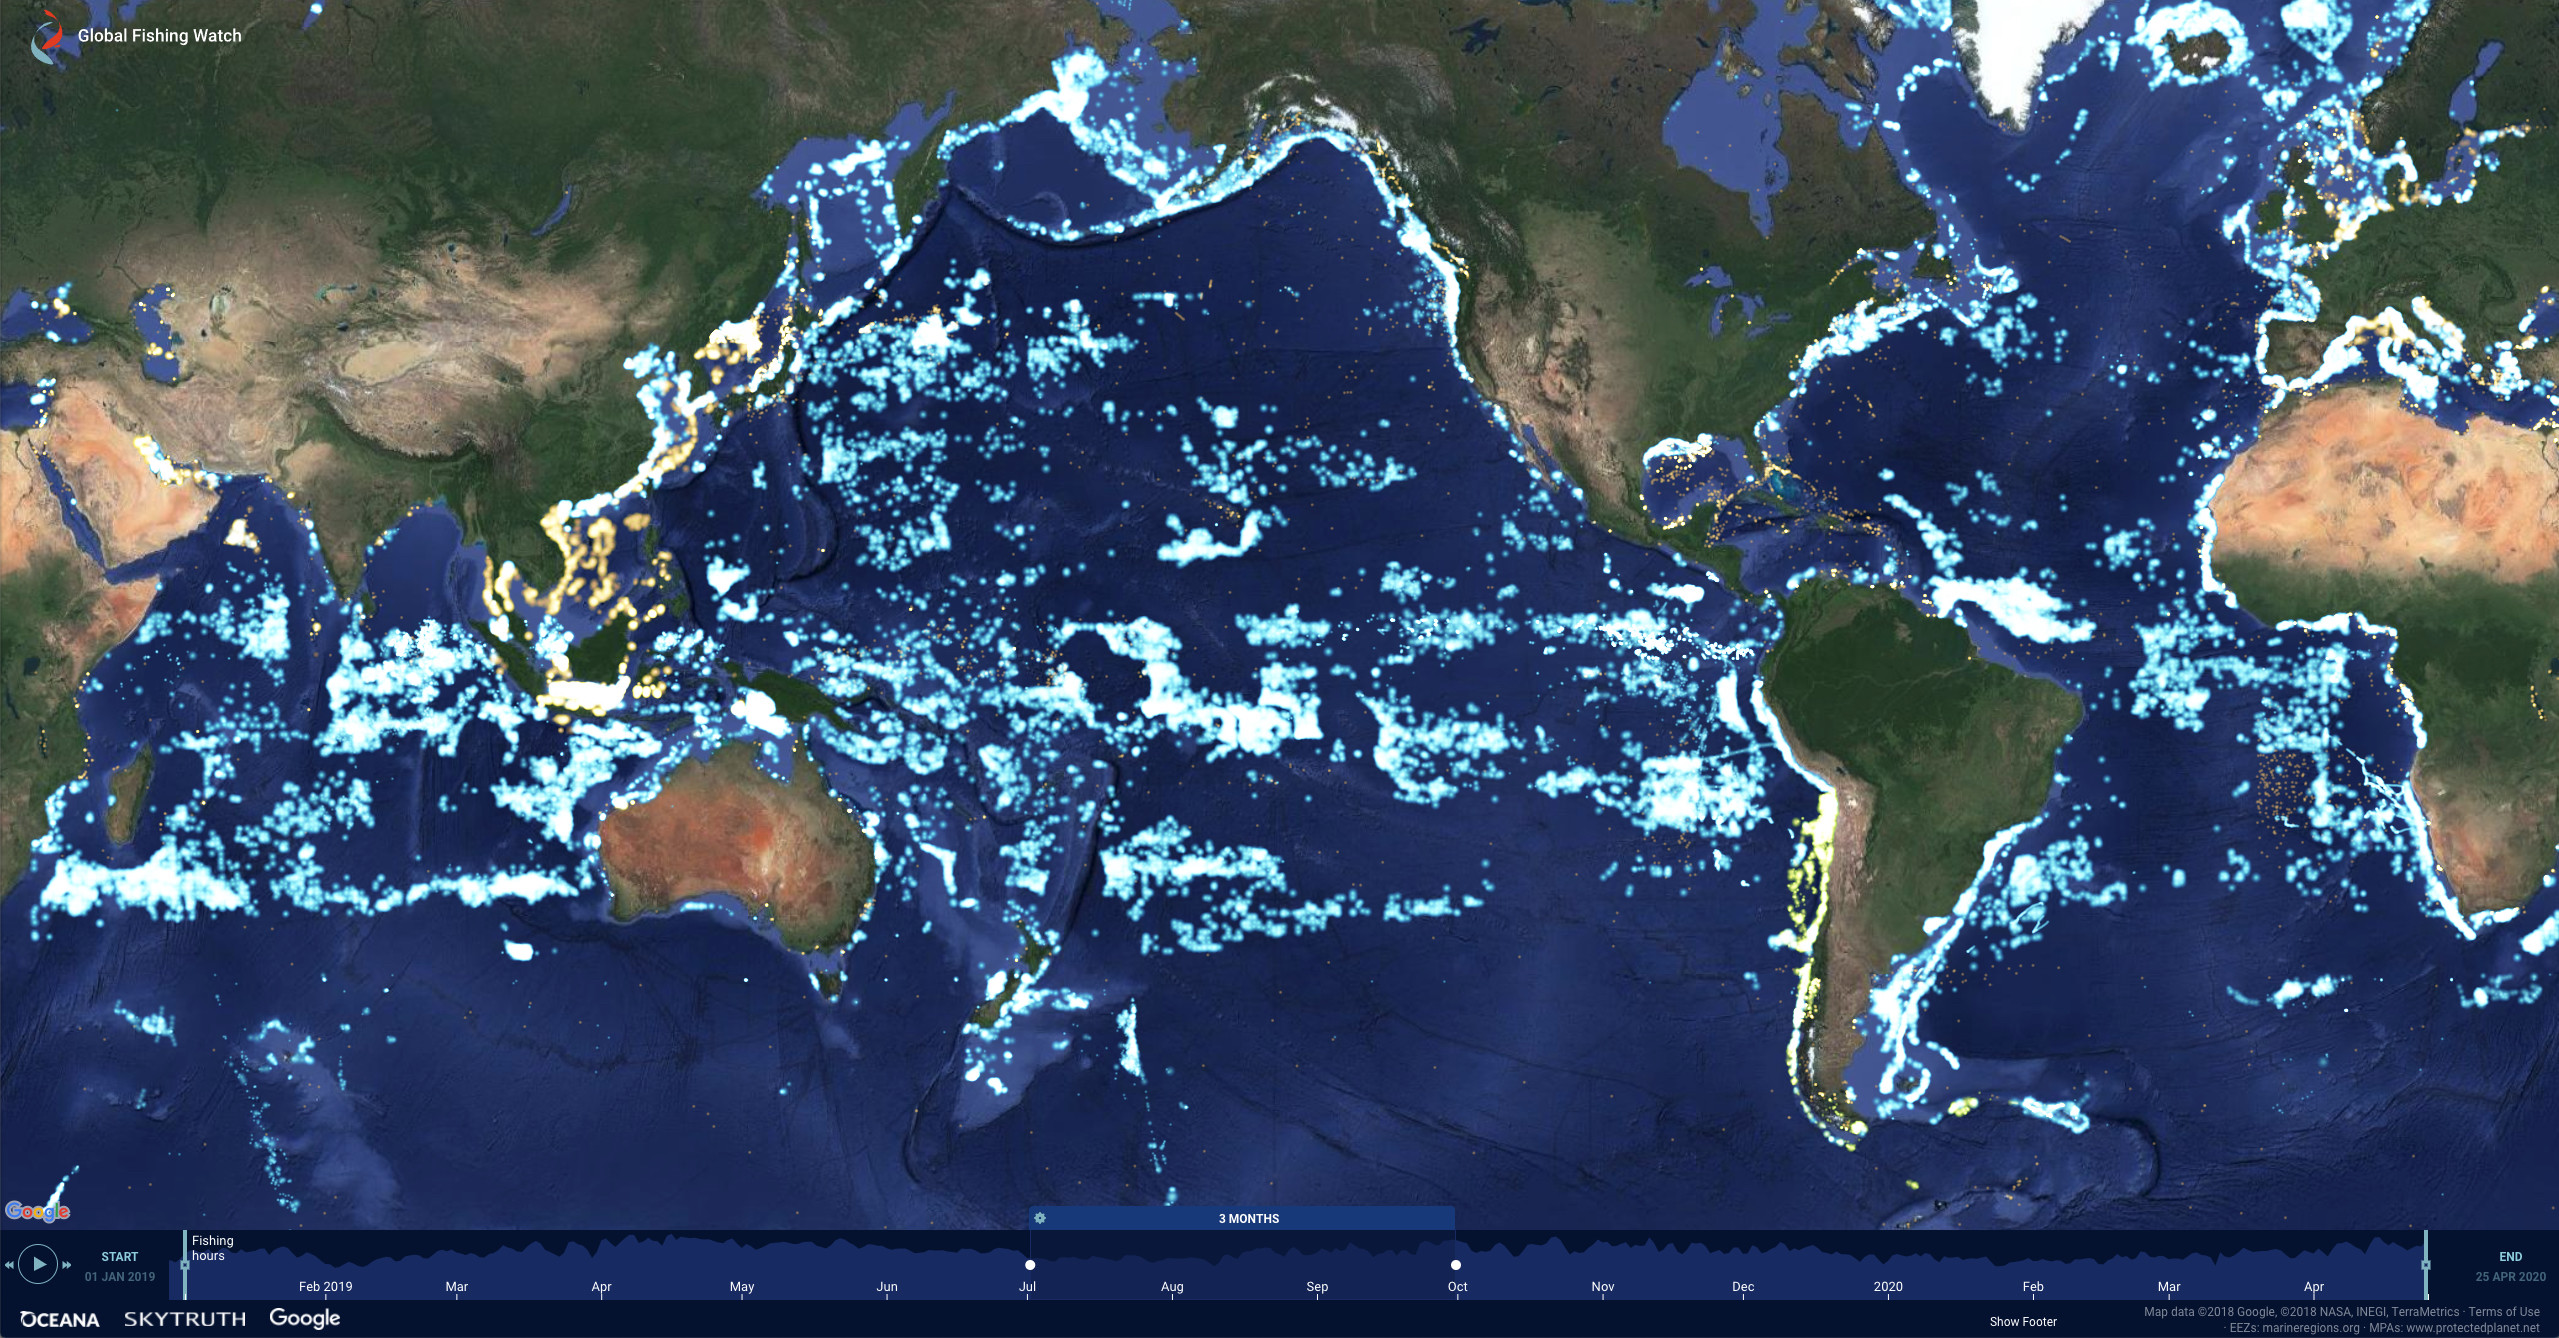 Global Fishing Watch's map tracks the movements of about 65,000 large, industrial fishing vessels all over the world in near real time